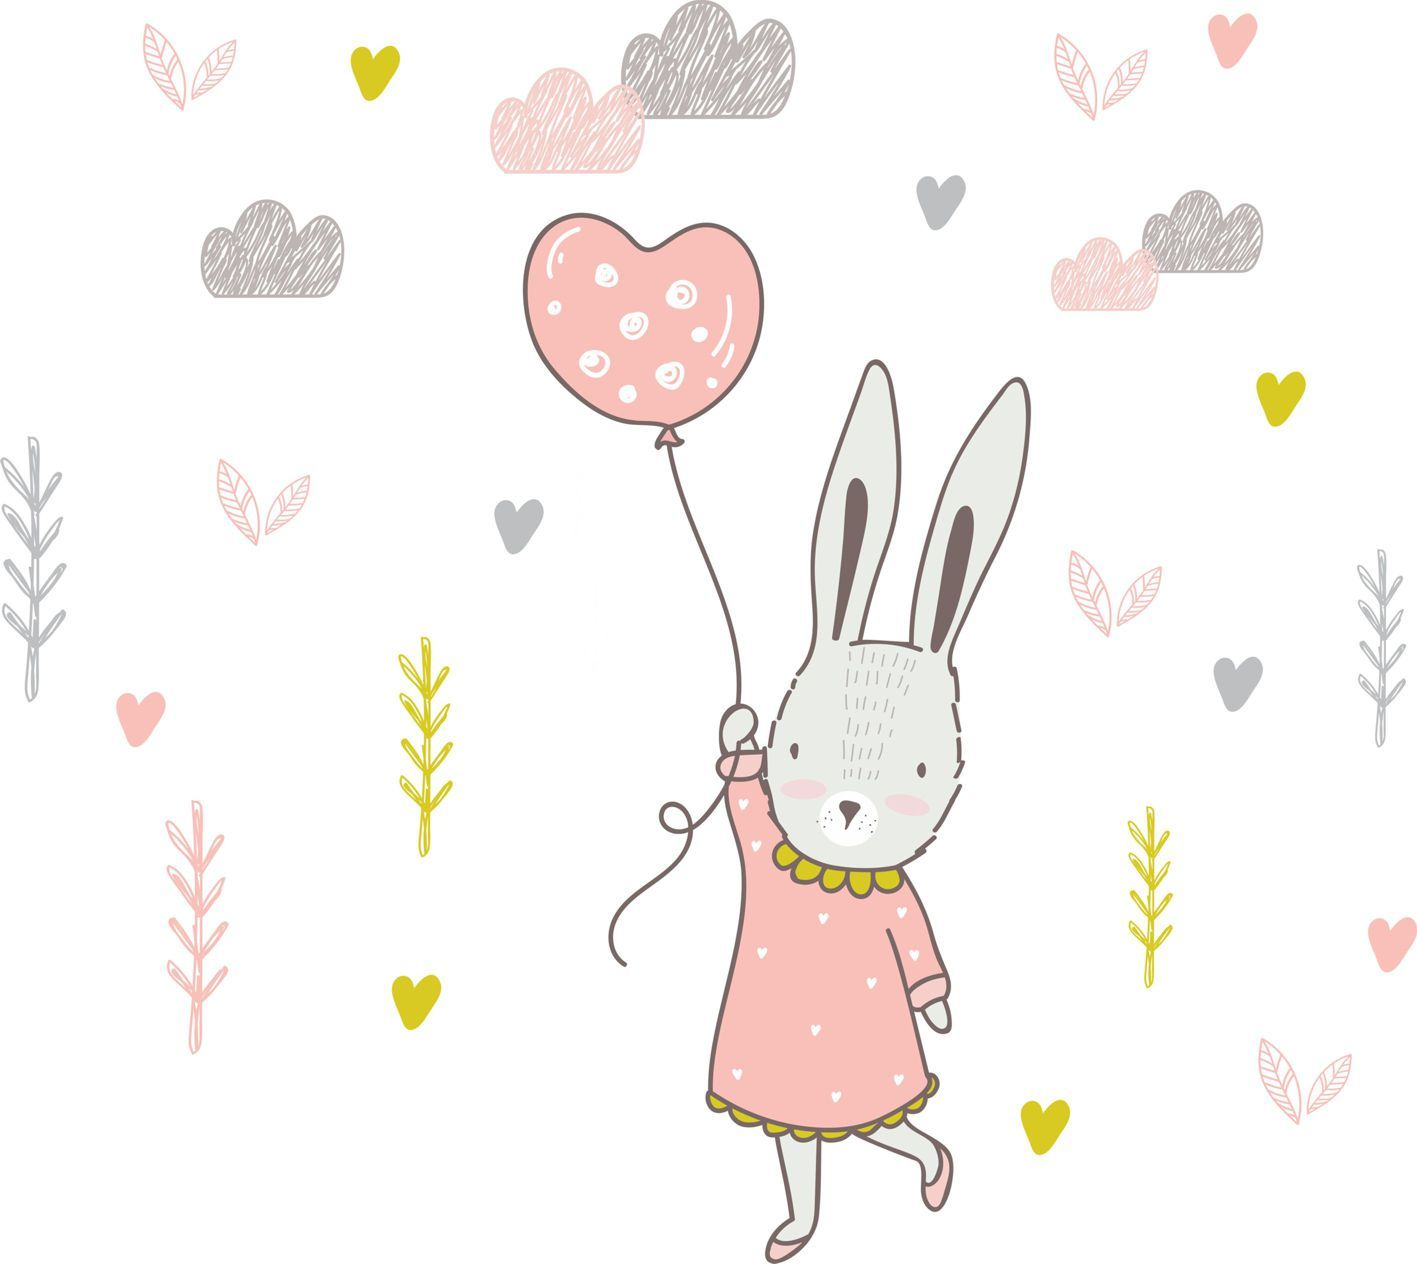 Bunny and Balloon - Lilly and Bee